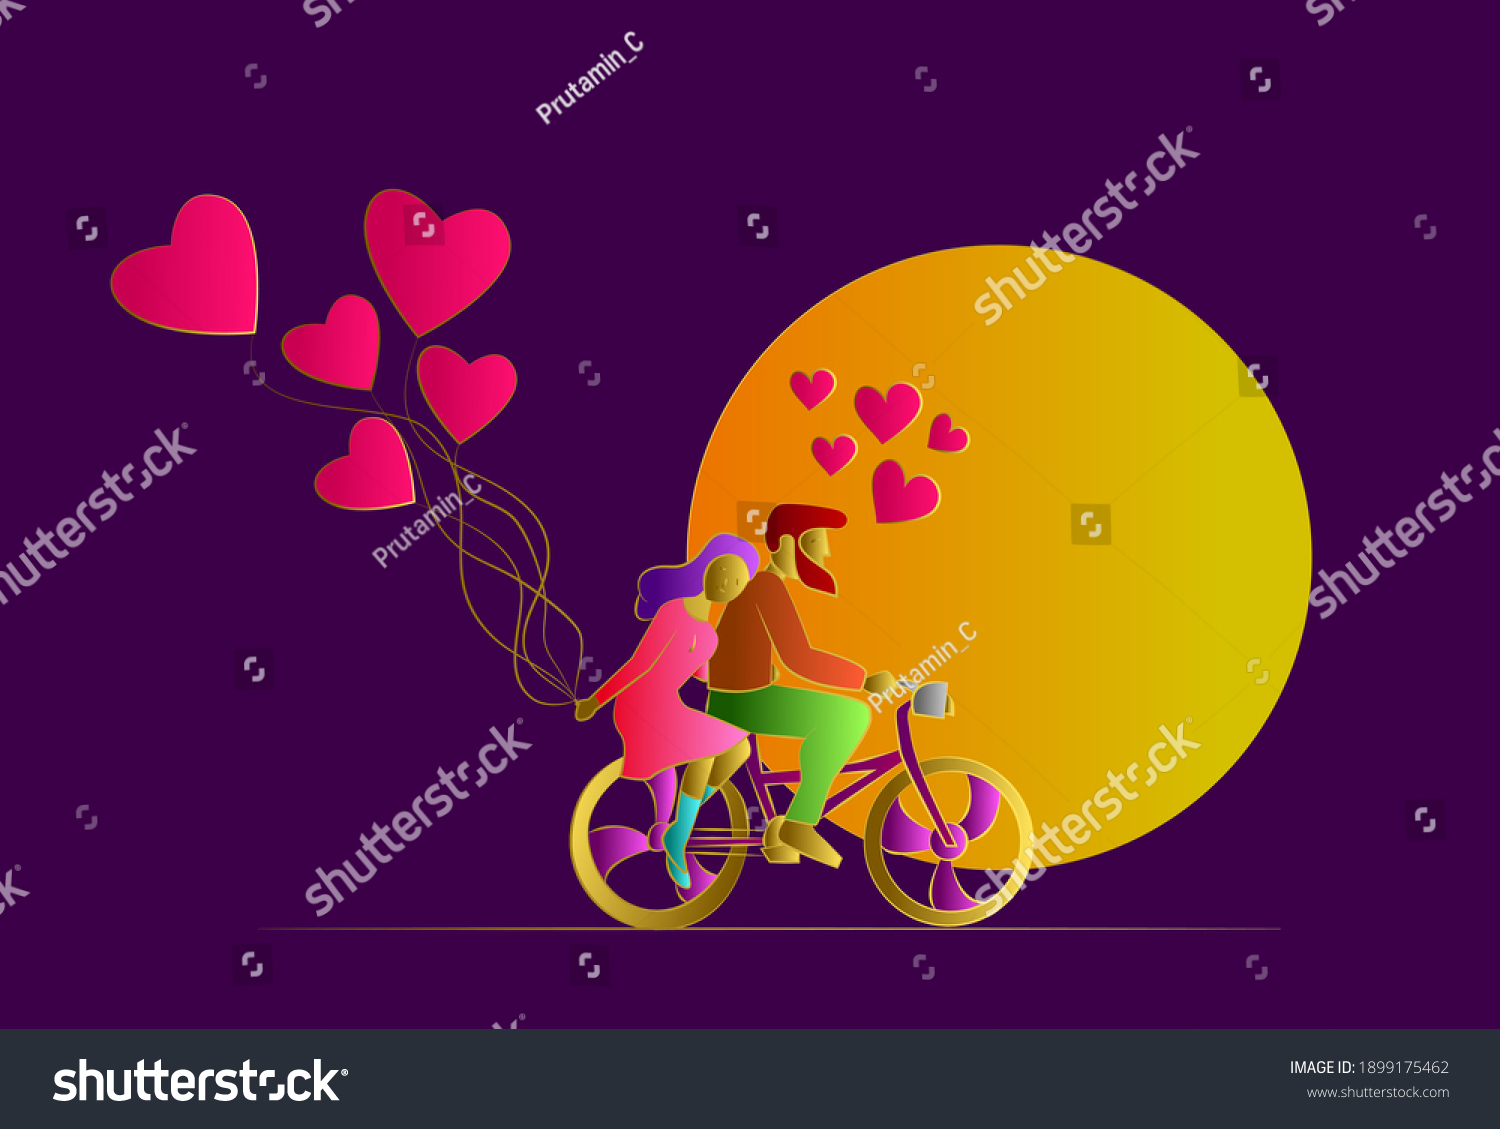 stock-vector-valentine-background-with-d